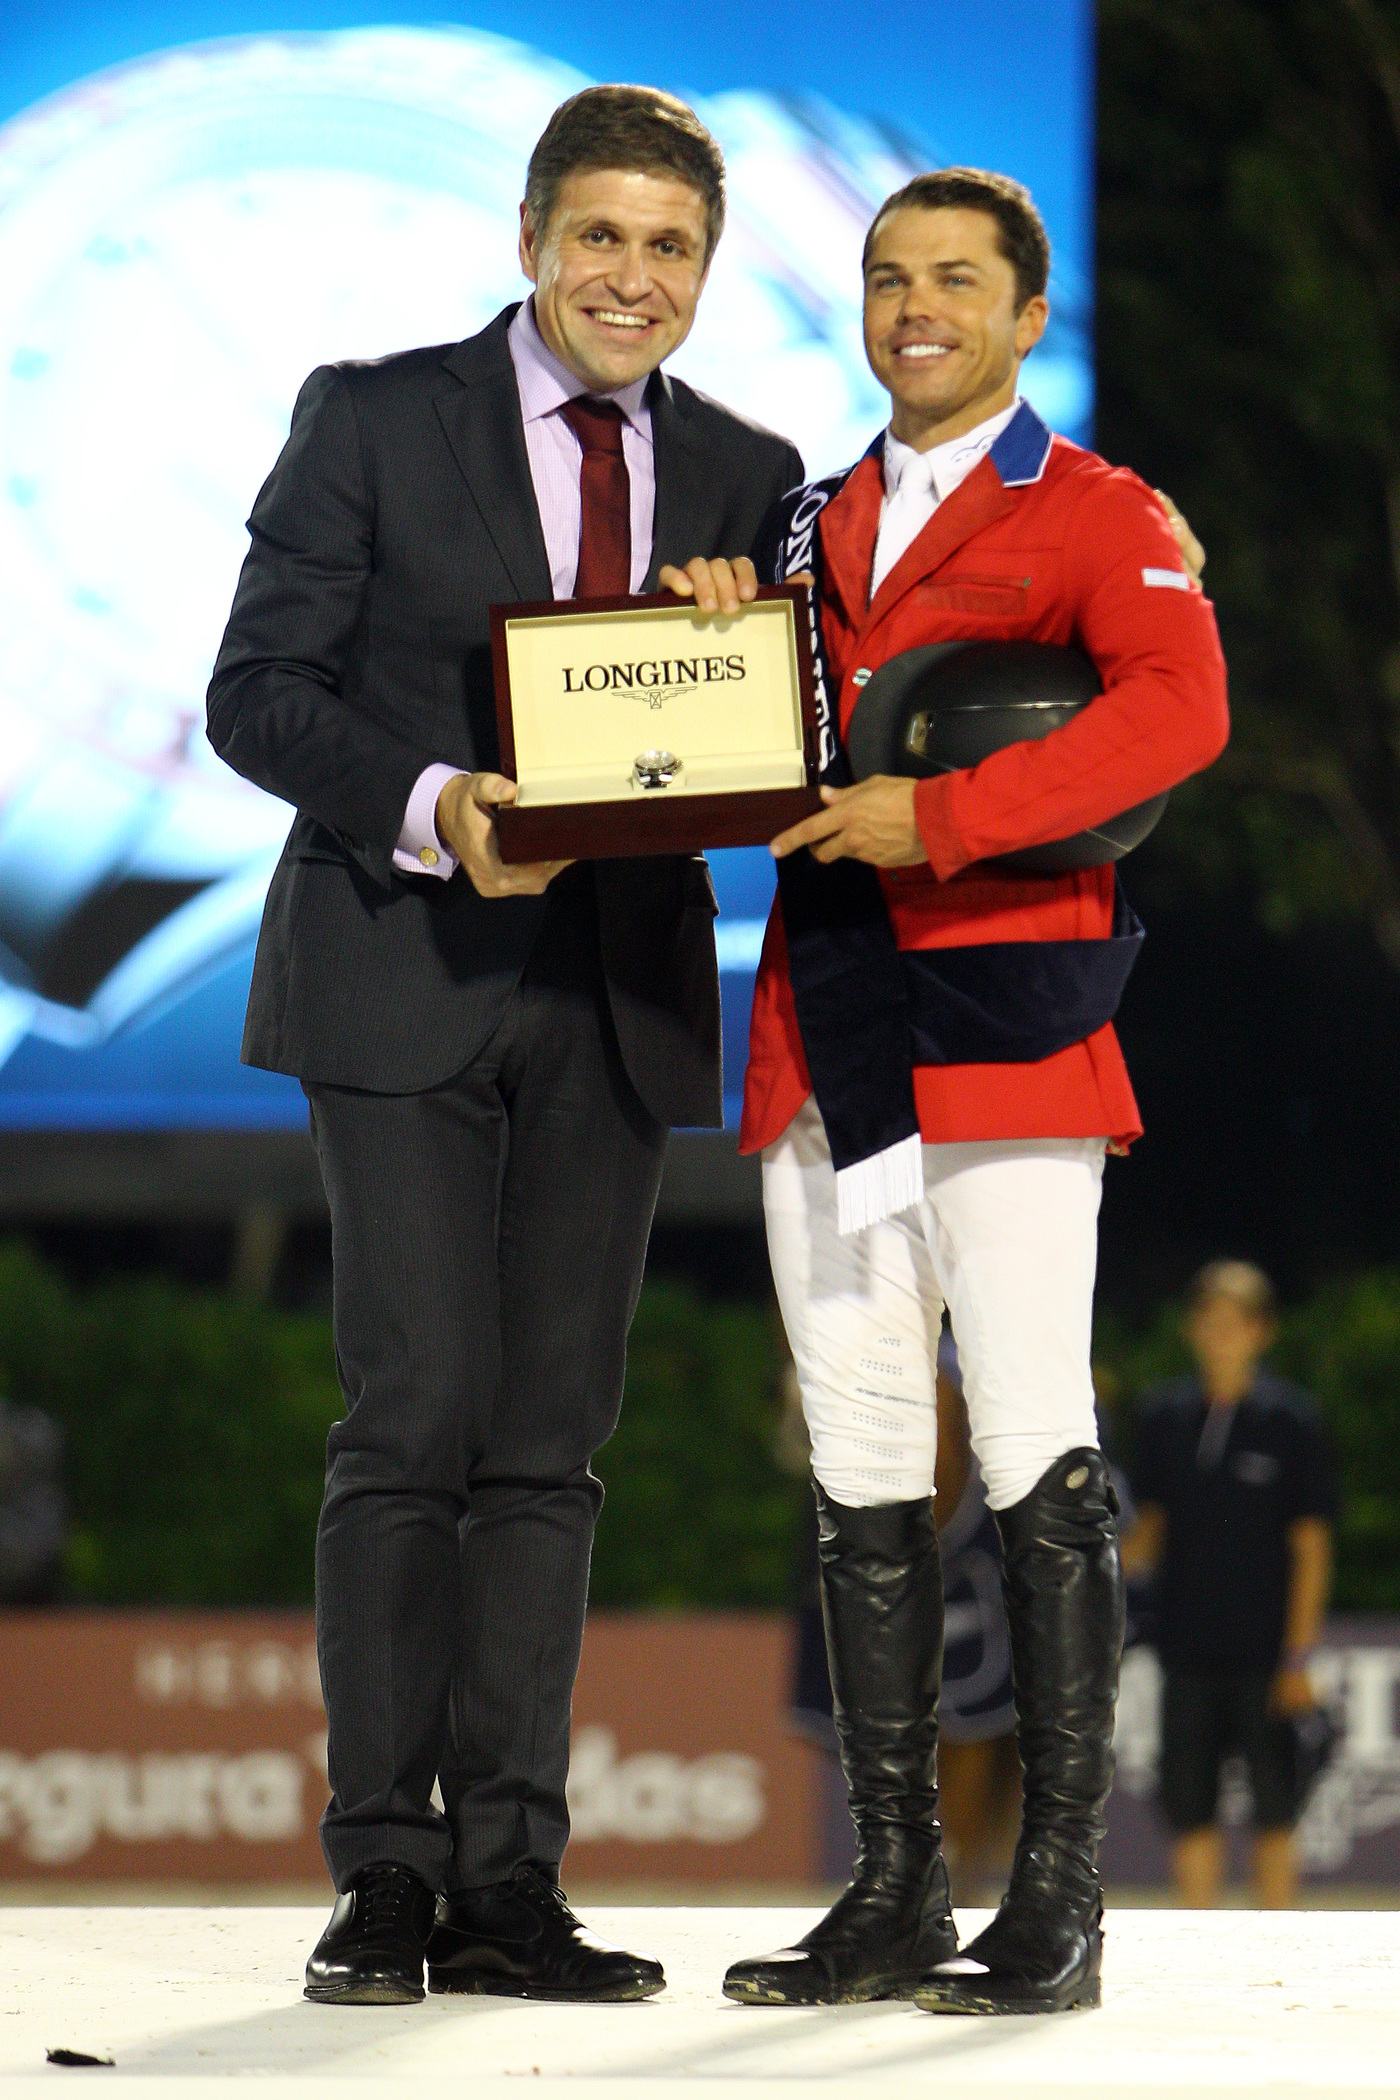 Longines Show Jumping Event: Team Netherlands closes the season with a thrilling victory at the Furusiyya FEI Nations Cup™ Jumping Final (Barcelona, SPAIN)  6